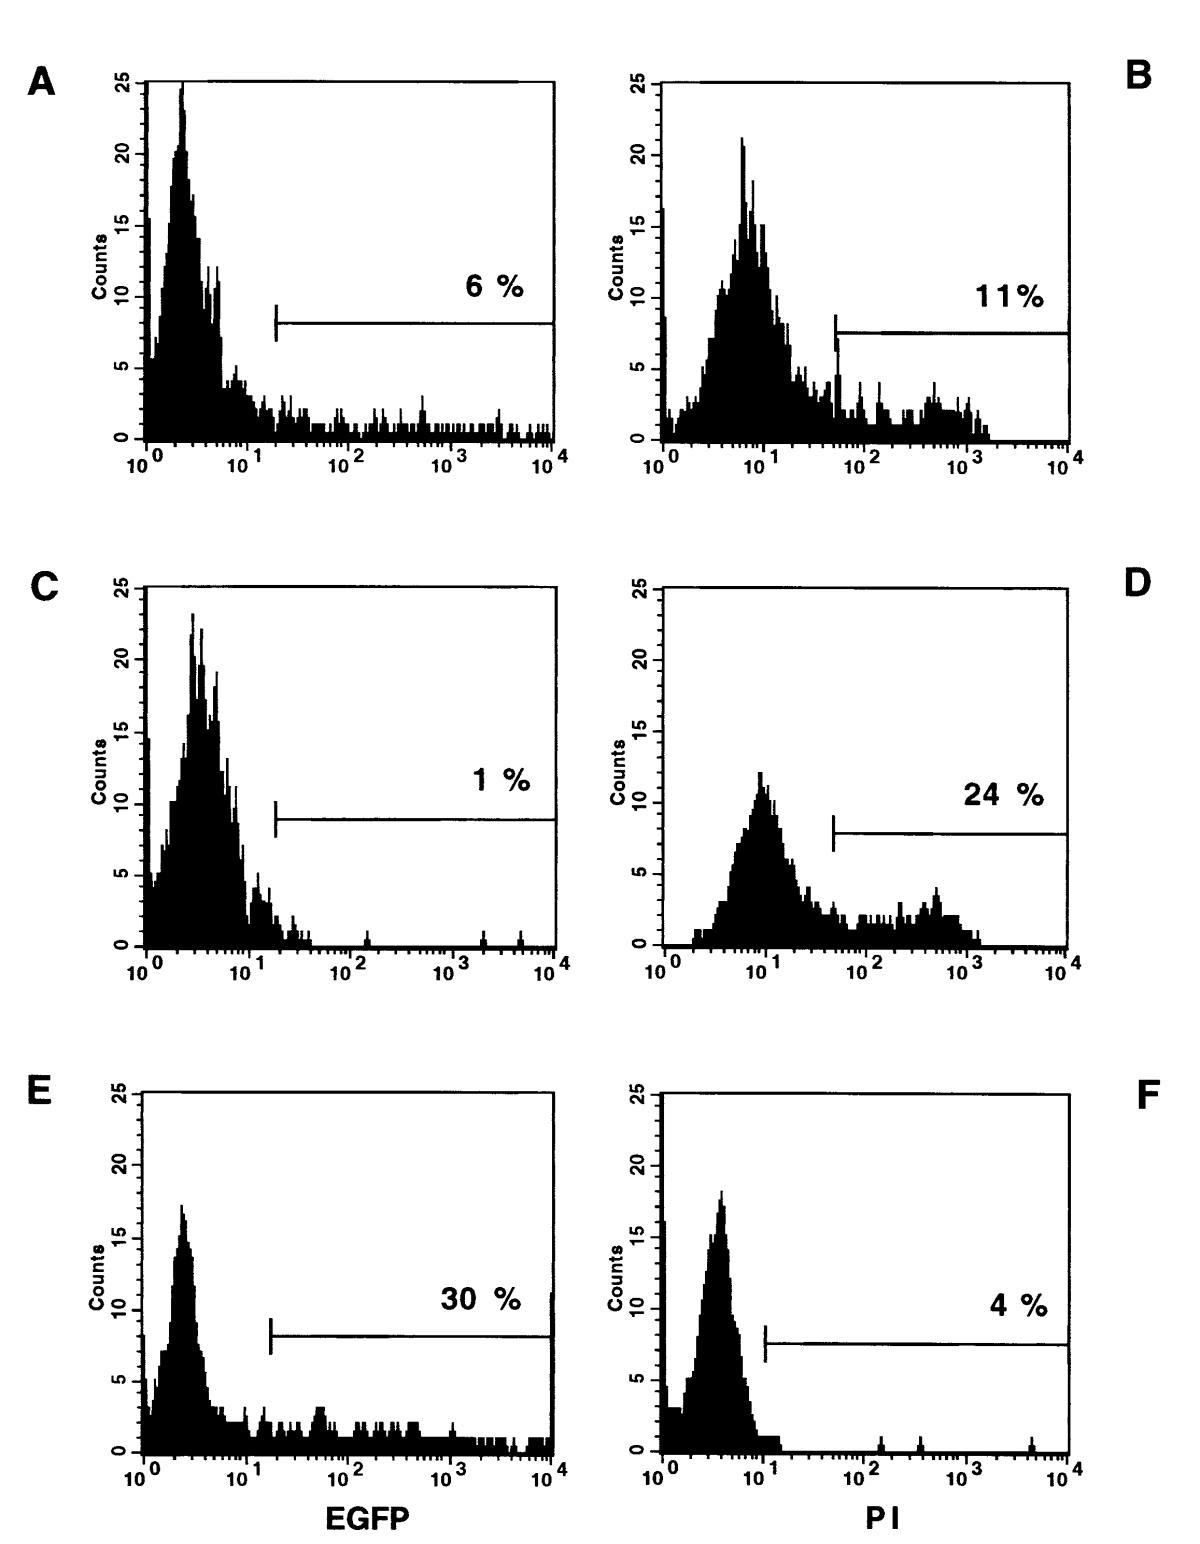 http://static-content.springer.com/image/art%3A10.1186%2F1471-2121-1-4/MediaObjects/12860_2000_Article_4_Fig2_HTML.jpg